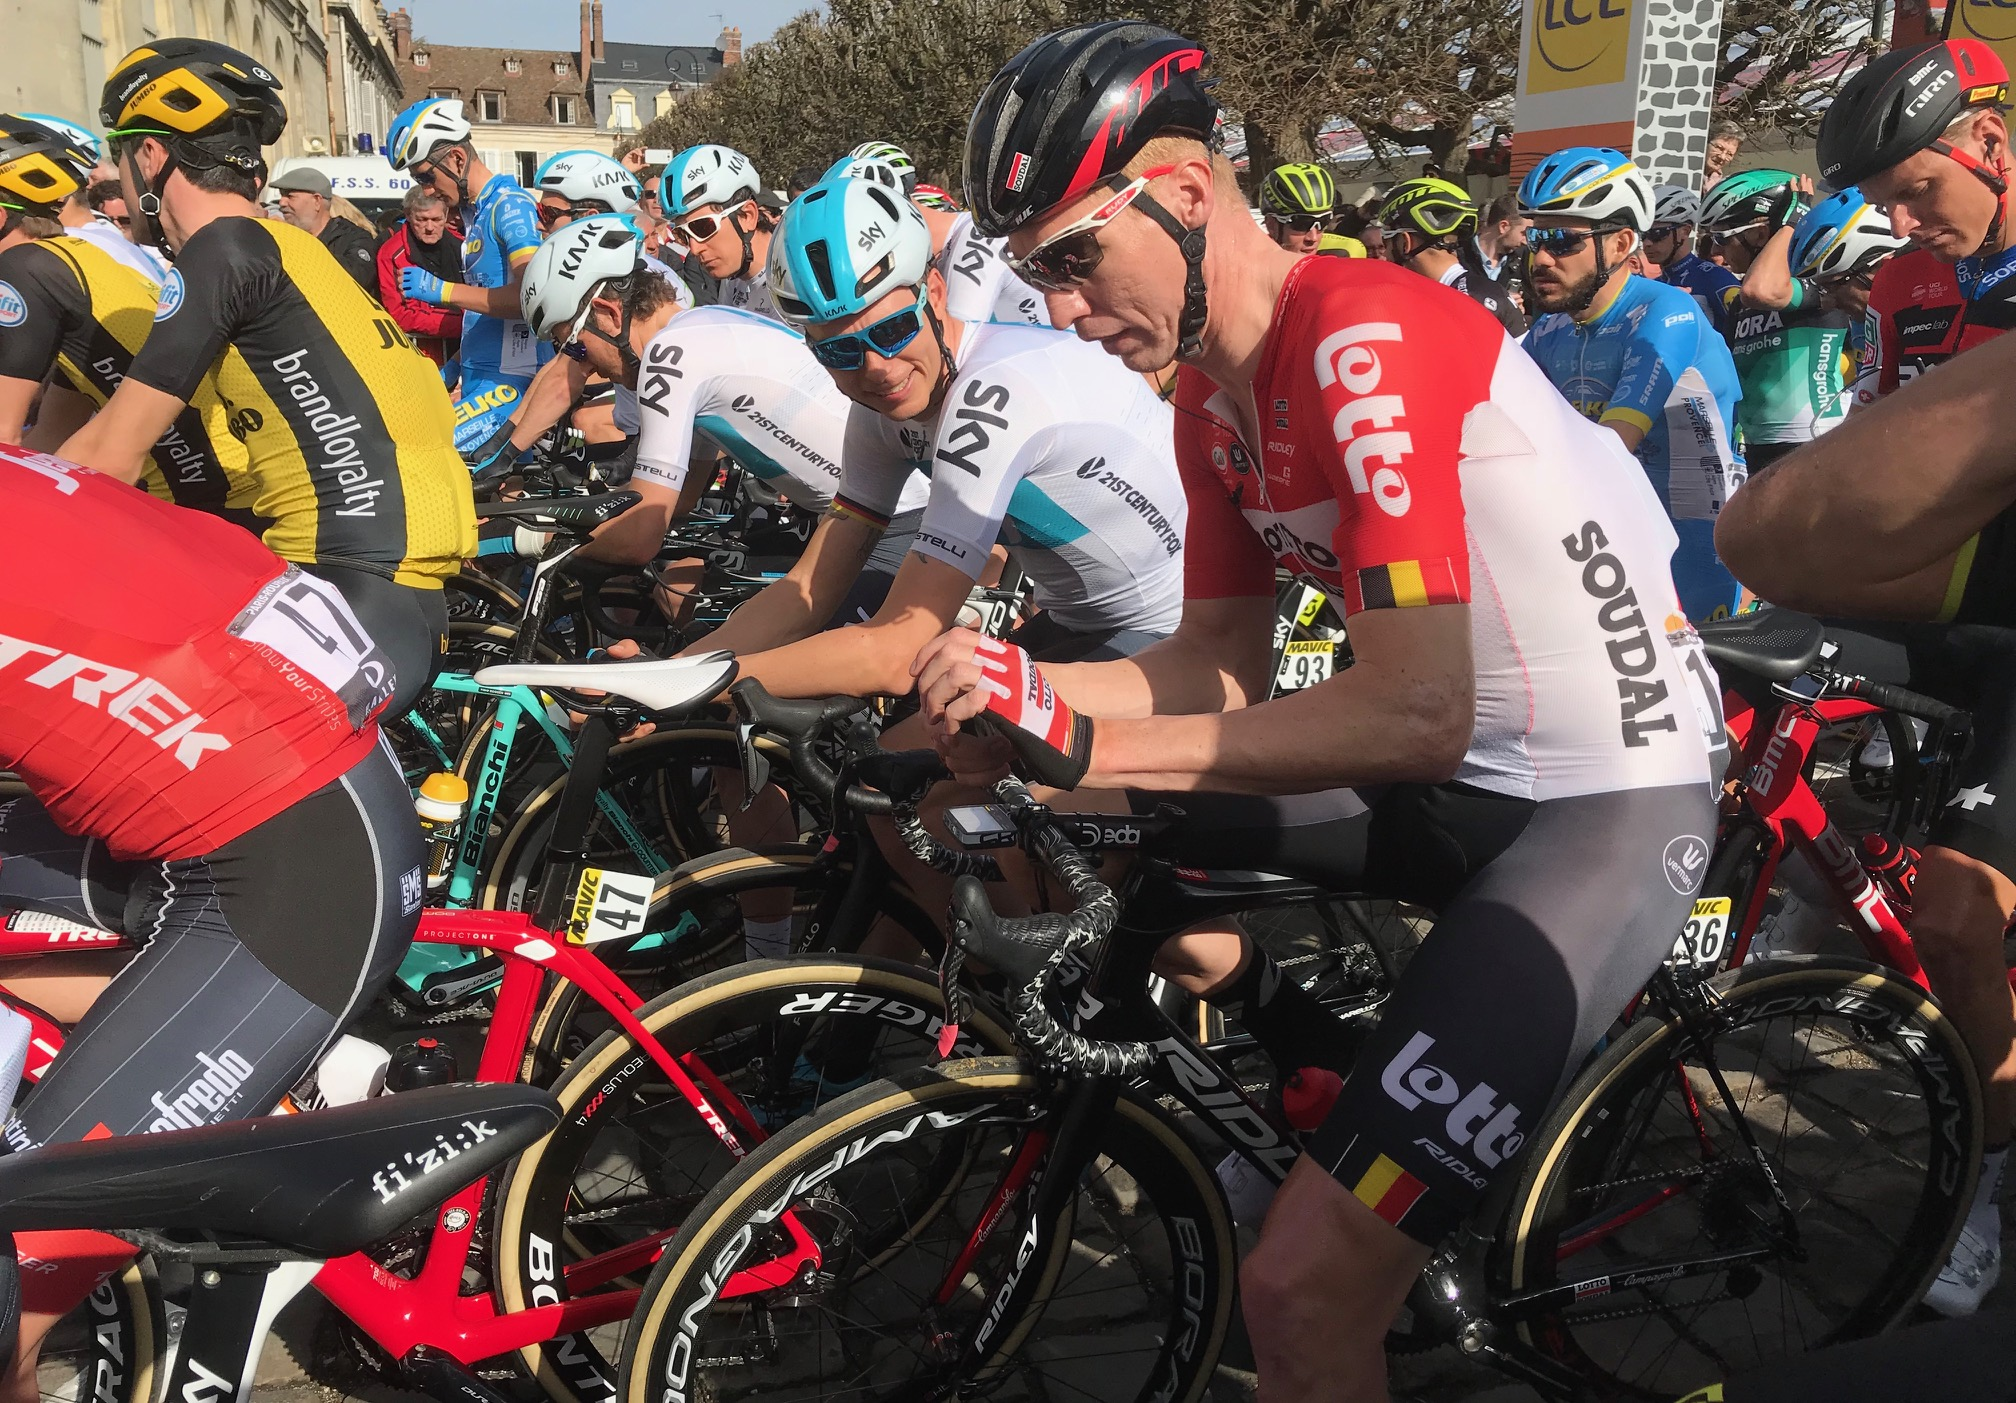 BiciSport in Flanders 18 @ Apr - on the Paris Roubaix start line at Compiegne.  Photo MO'R